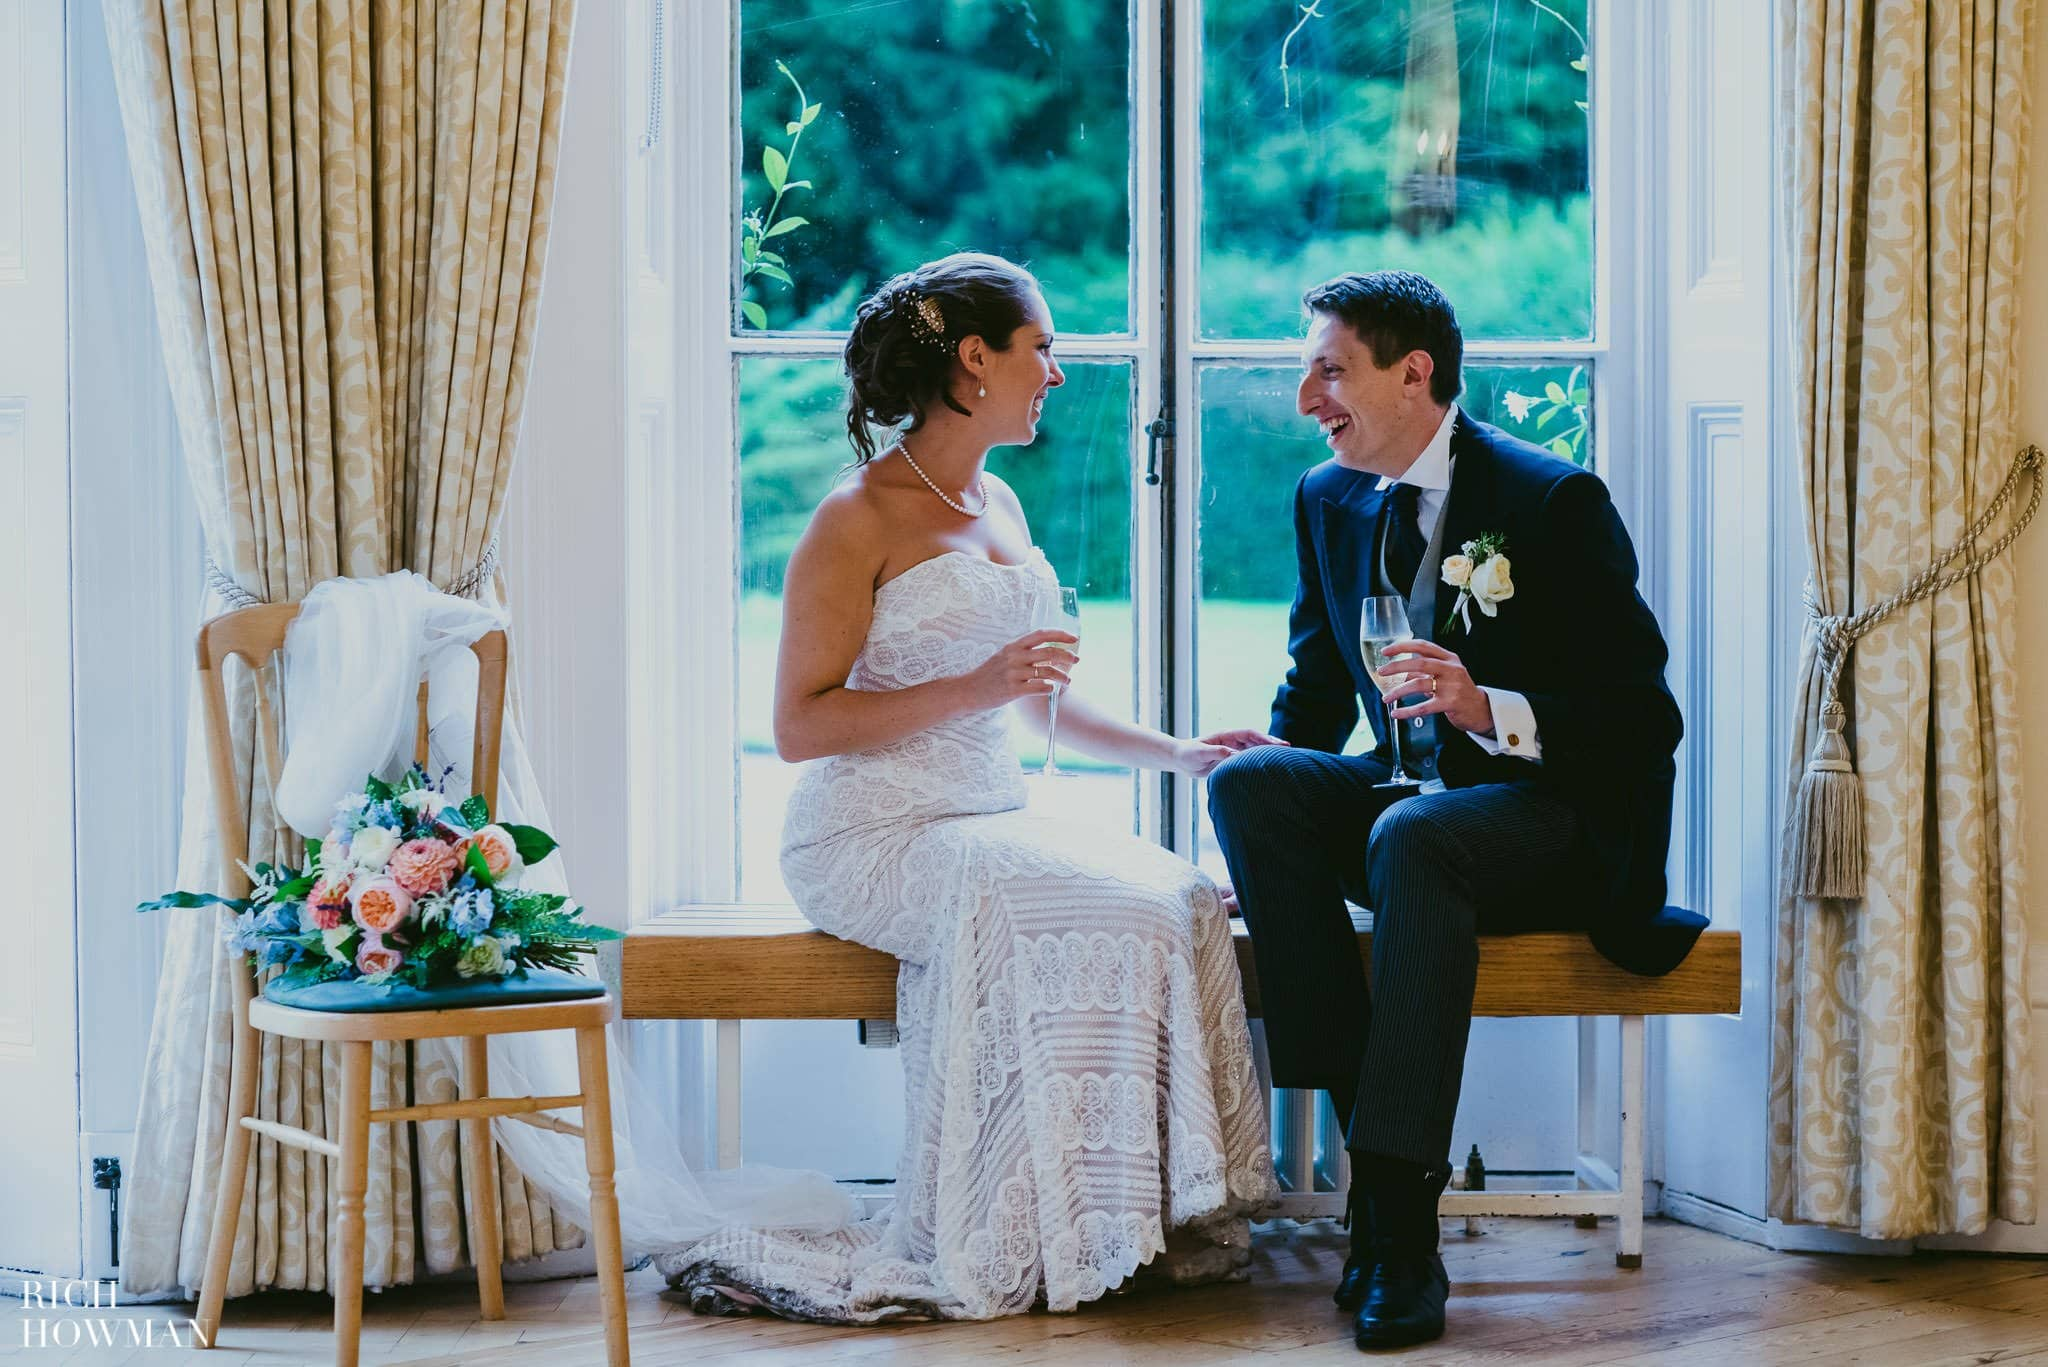 Enjoying a drink together in the ceremony room at Cambridge Cottage.